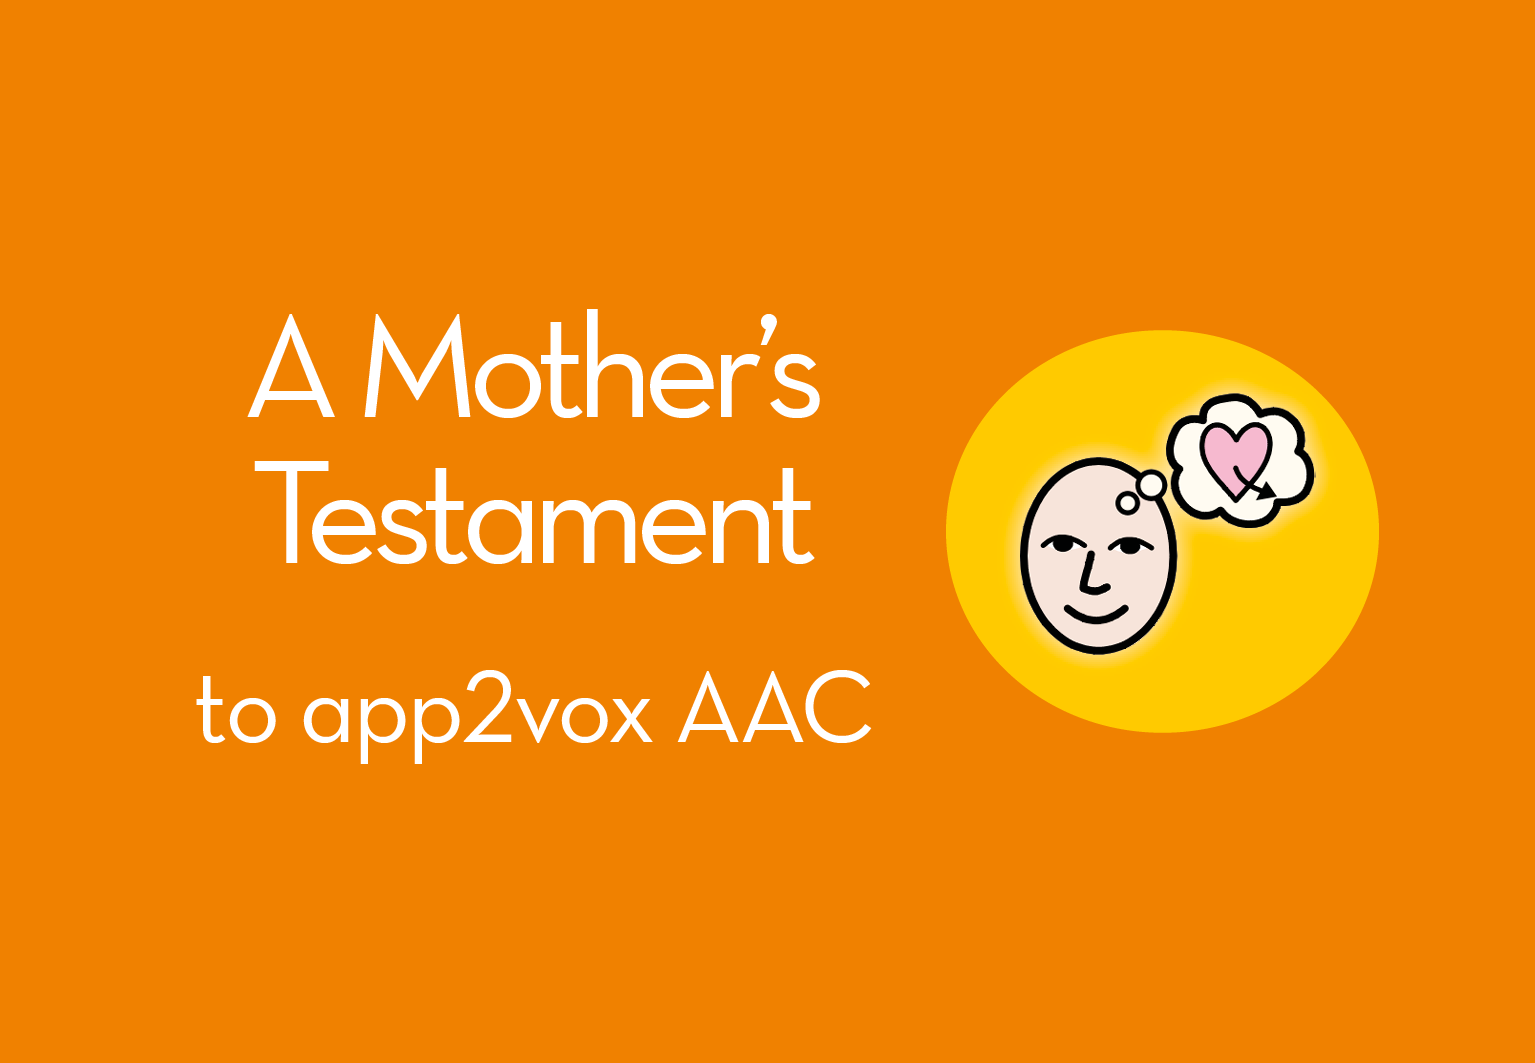 A Mother's Testament to app2vox AAC